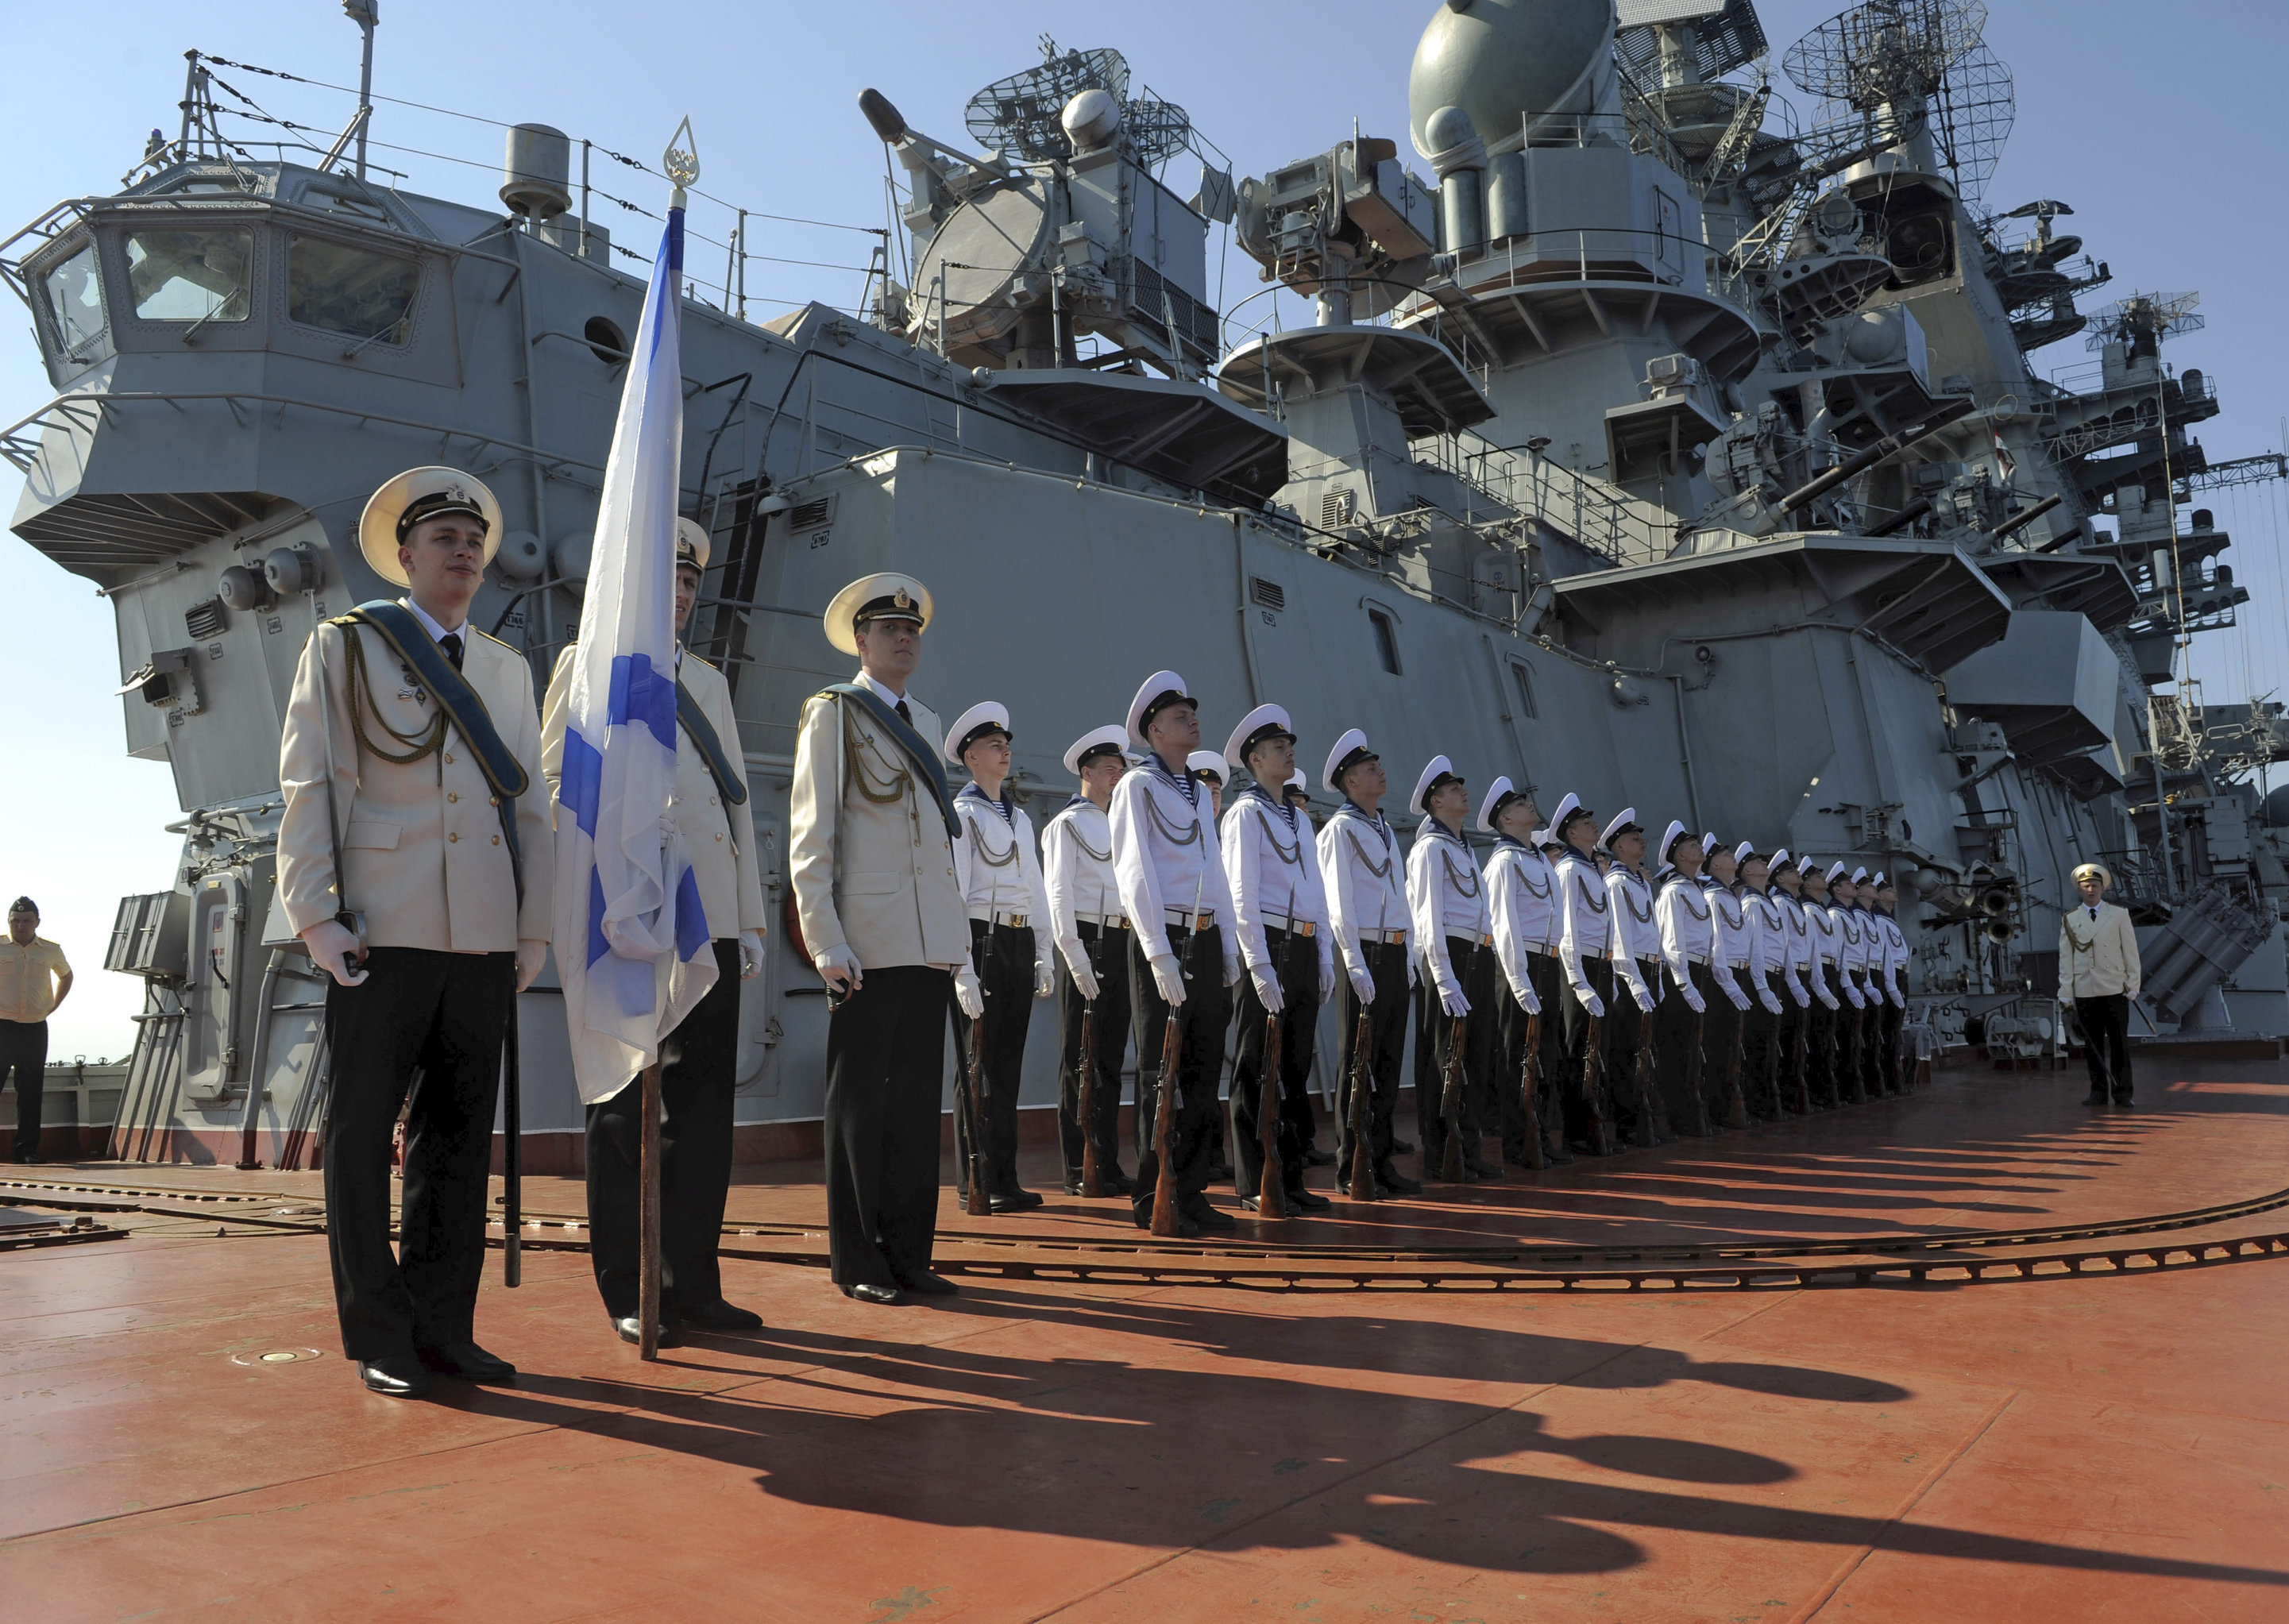 Pyotr Veliky missile cruiser makes port call in Tartus Syria